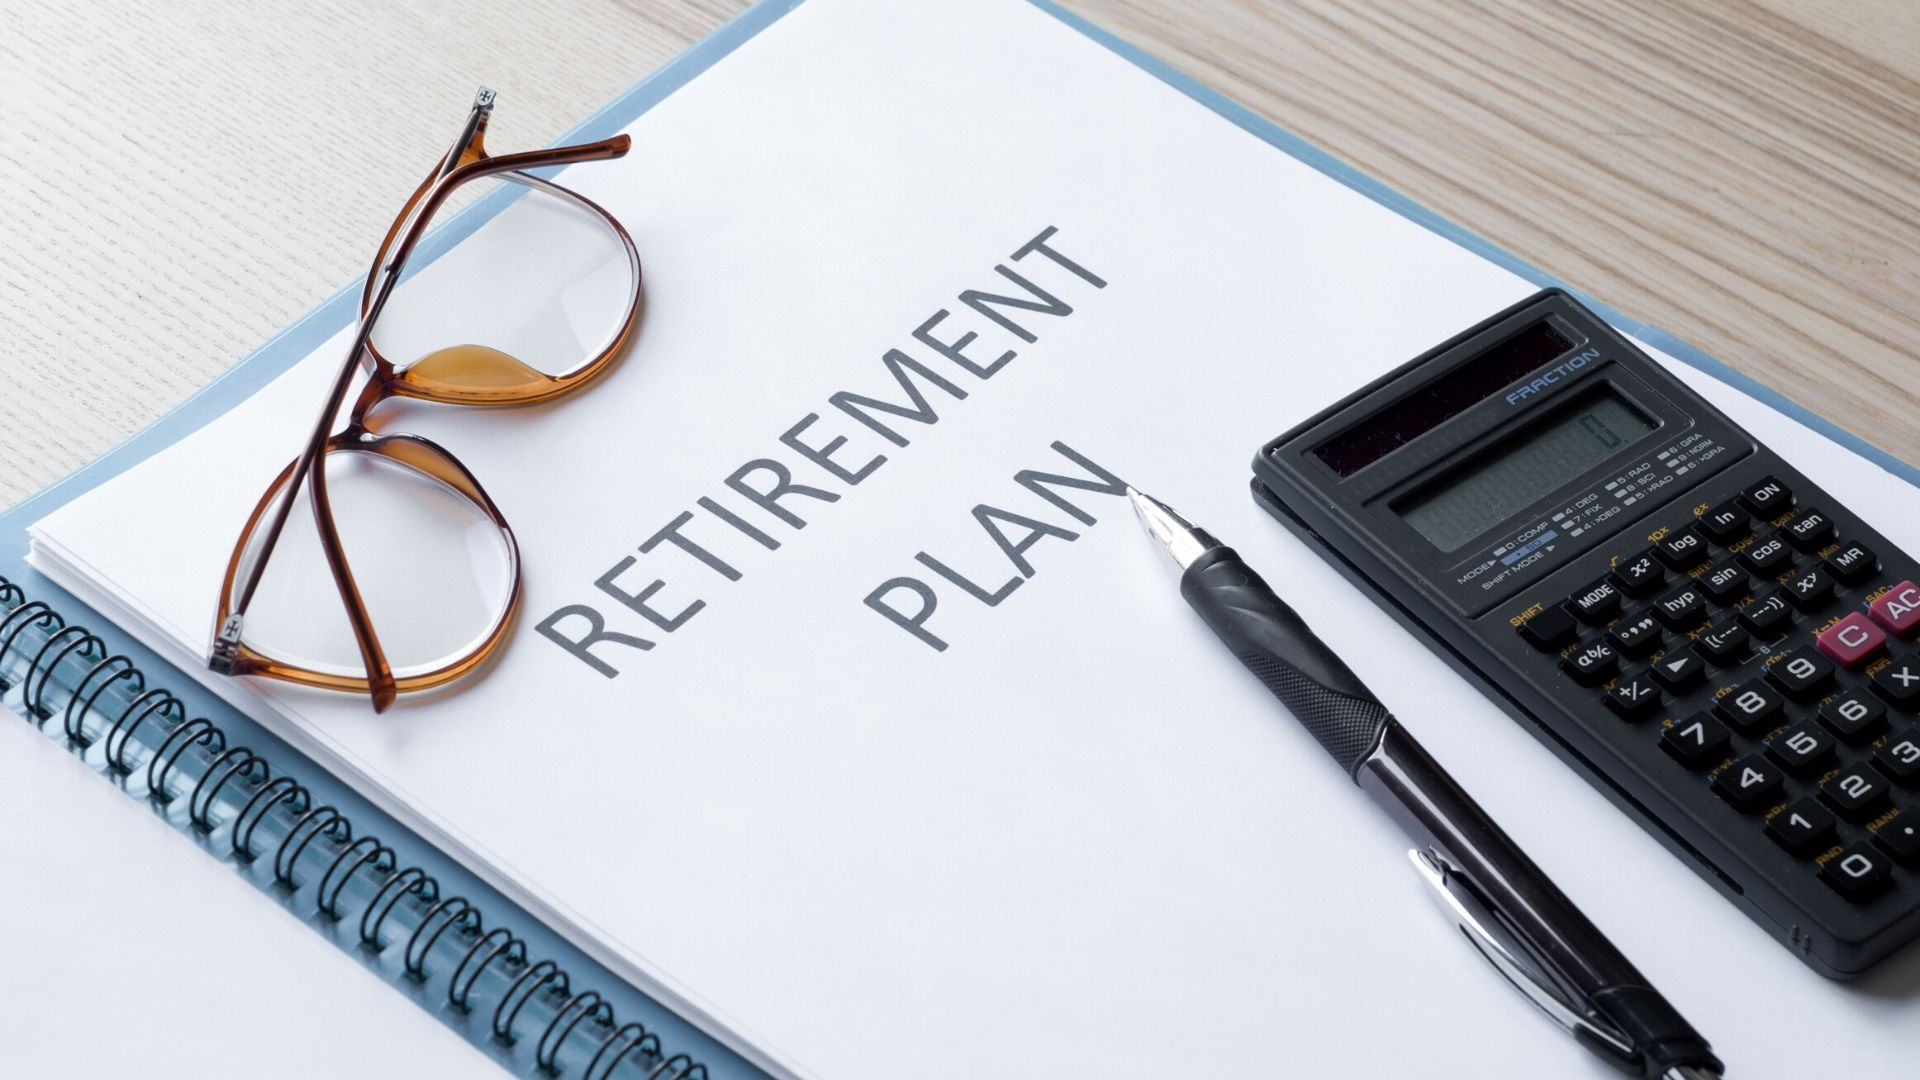 Image of a folder with the words 'retirement plan' printed on the front with a calculator, pen and glasses also on the desk